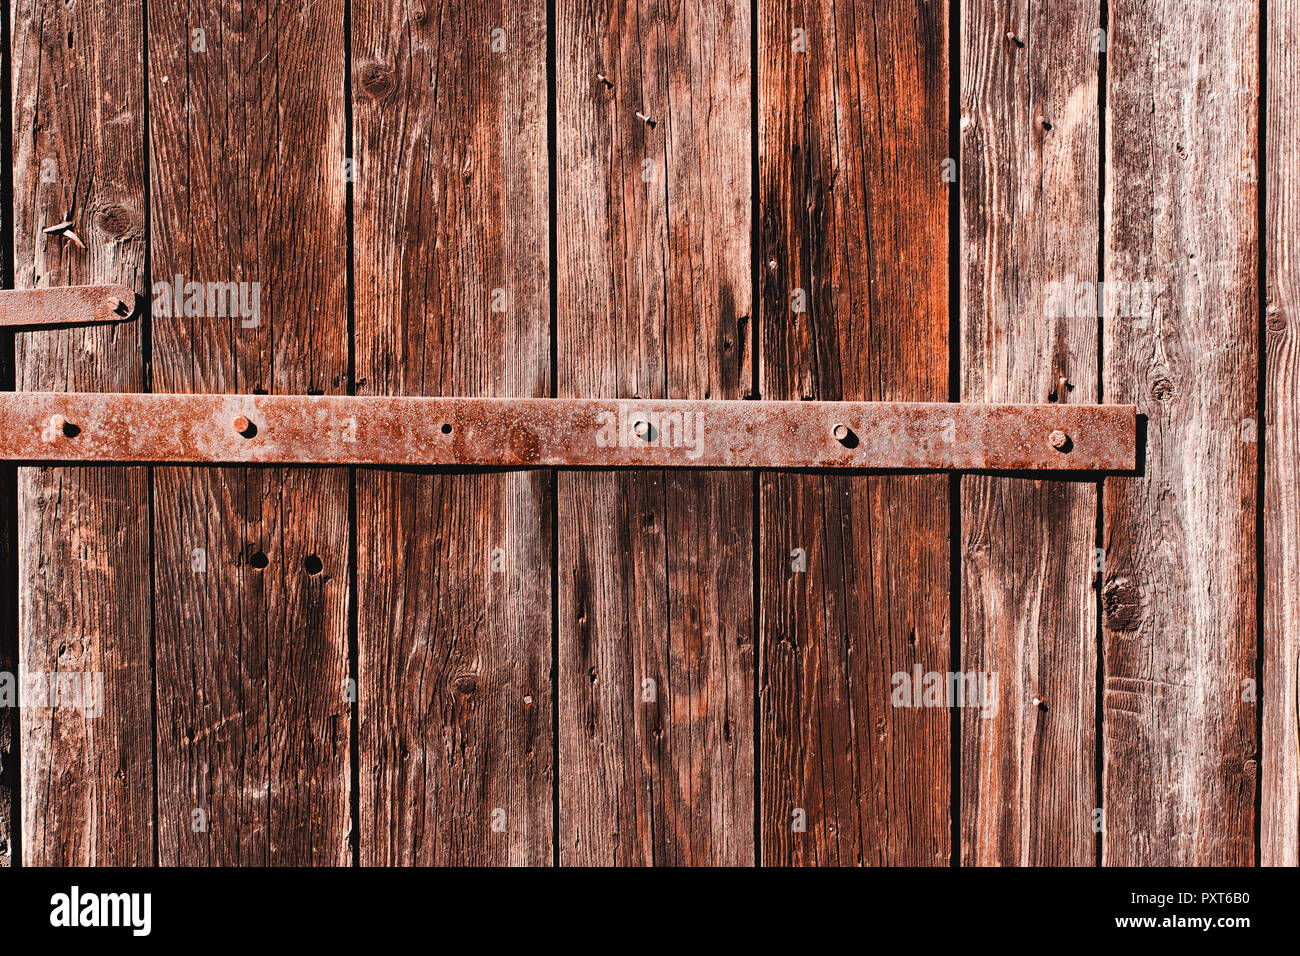 Old antique  wooden groung the background with rusty iron nails and a staple,rustic wall or table - Stock Image